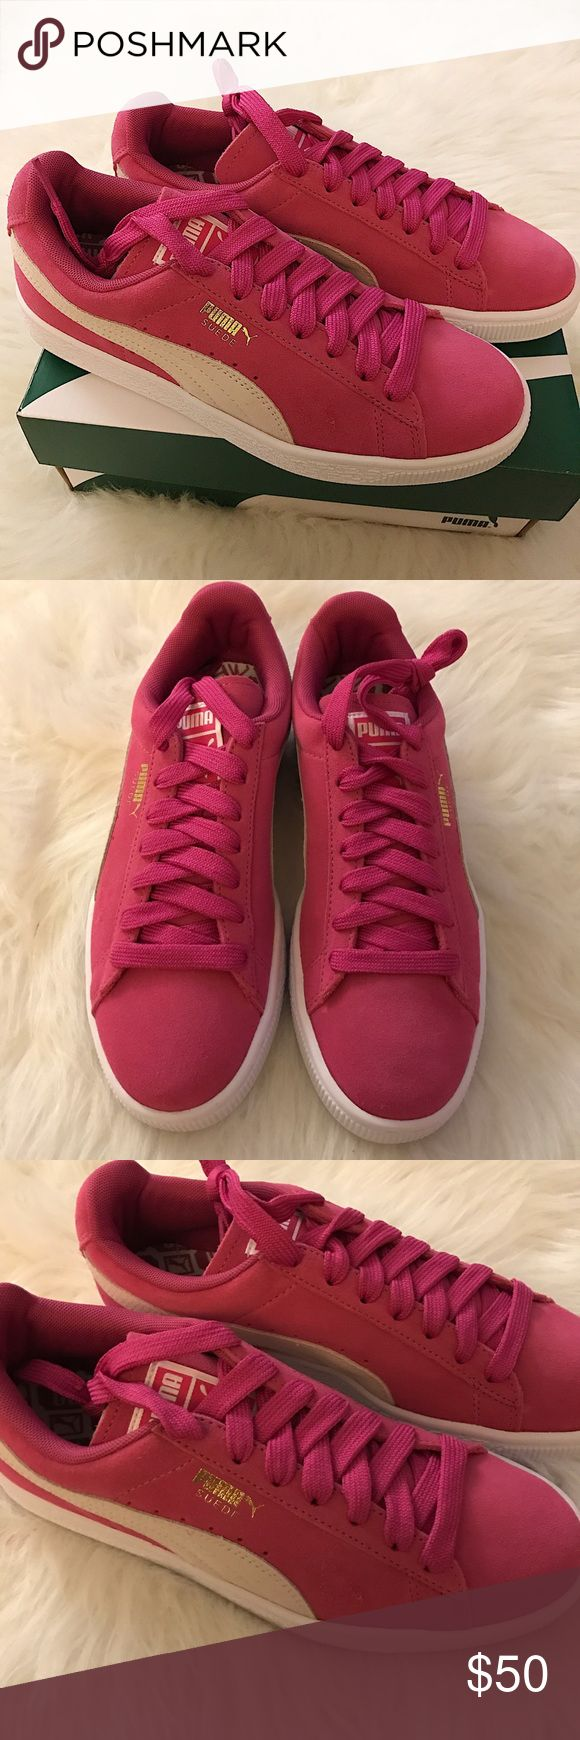 Women's Puma Suede Classic Sneakers Brand new with box. Puma Shoes Athletic Shoes